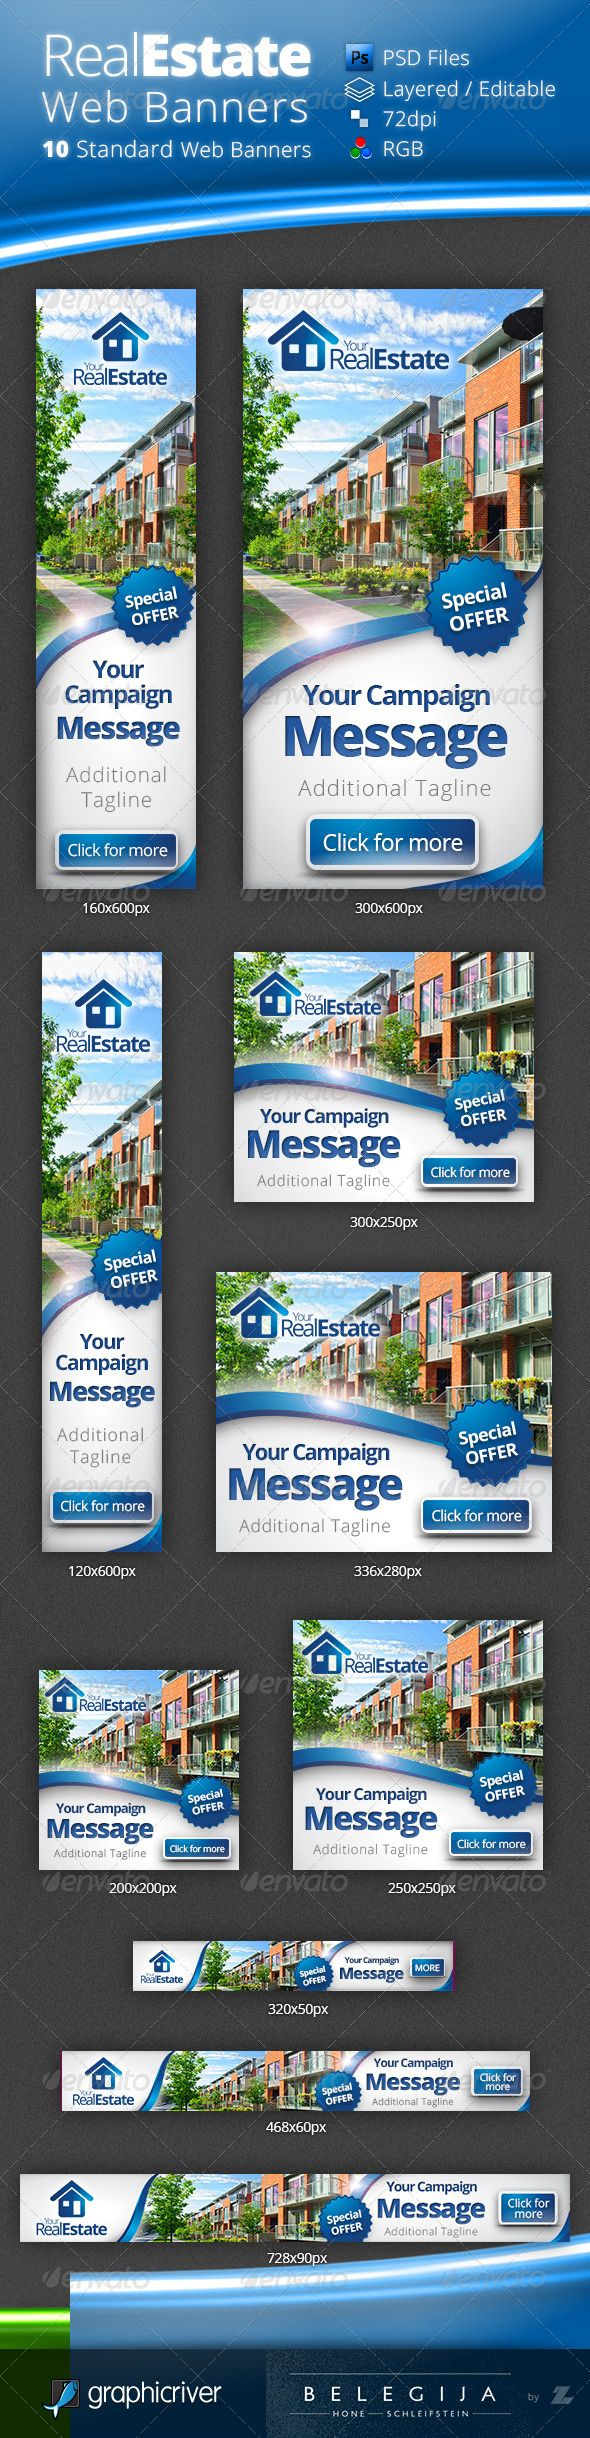 Real Estate Web & Facebook Banners | Banners, Real estate and ...